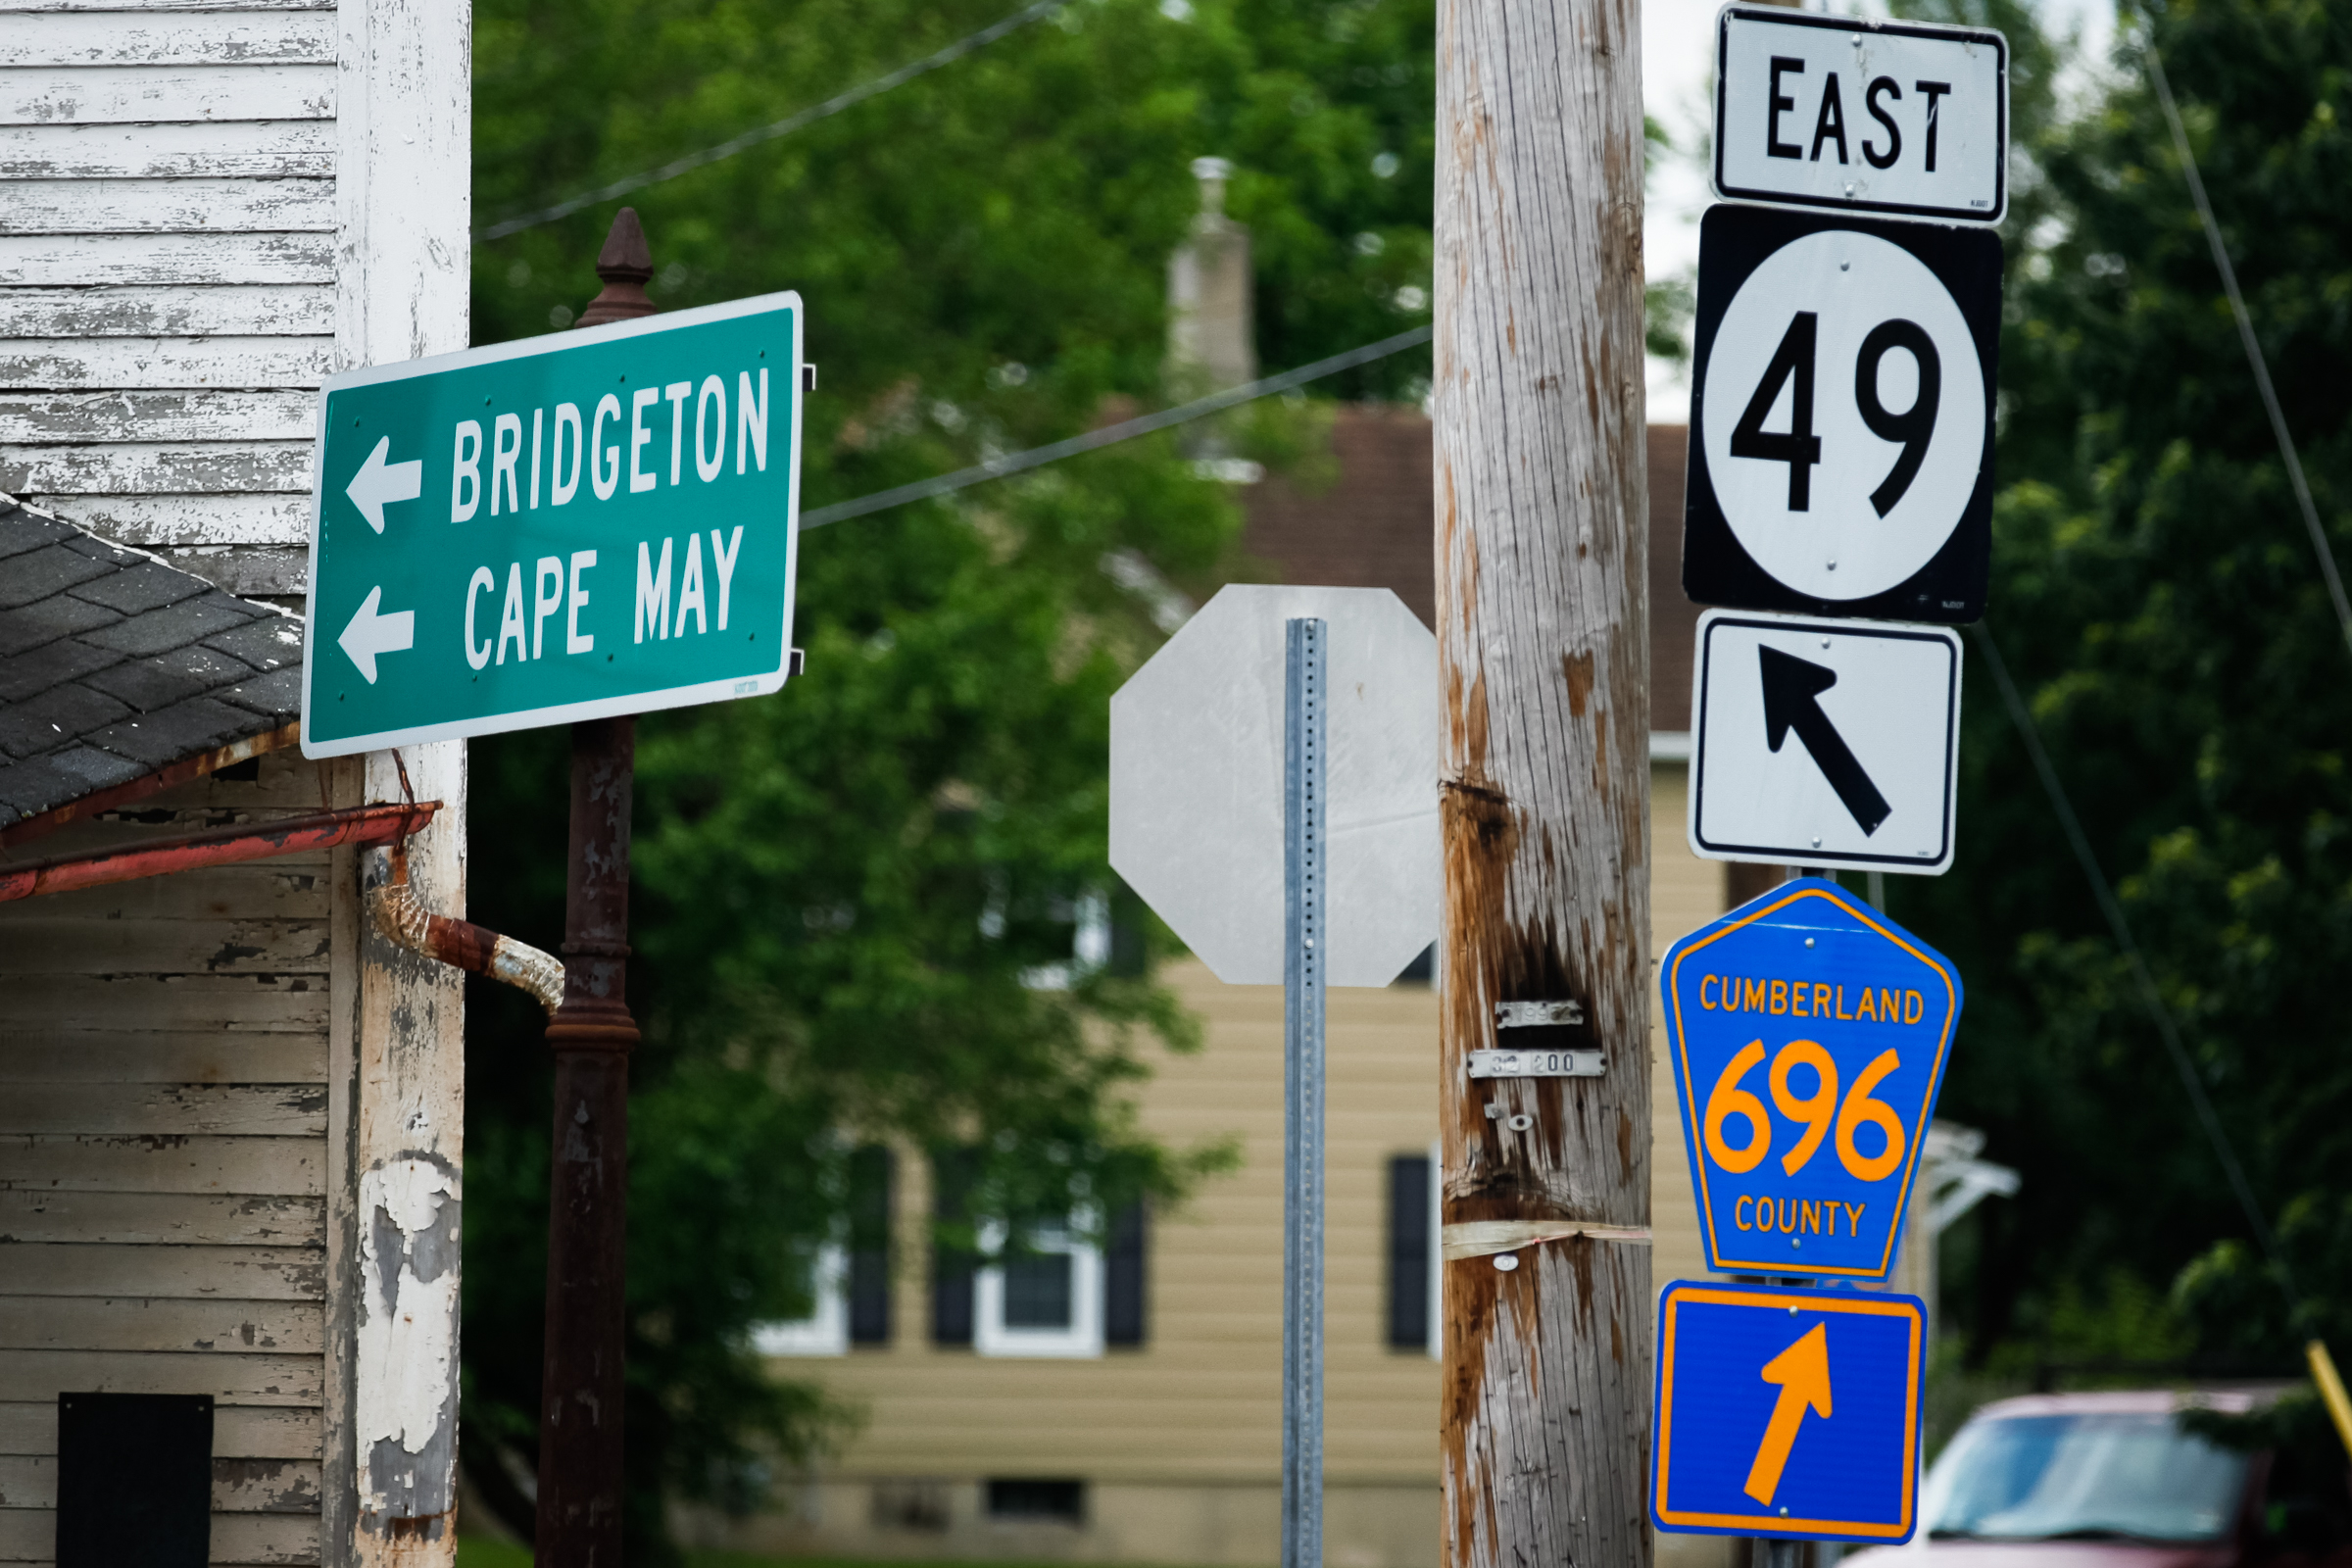 NJ Route 49 is a thoroughfare to get from the western side of South Jersey to southern Shore Points. This intersection with three Cumberland County routes in Shiloh, outside Bridgeton, is complicated -- and a bit forlorn.